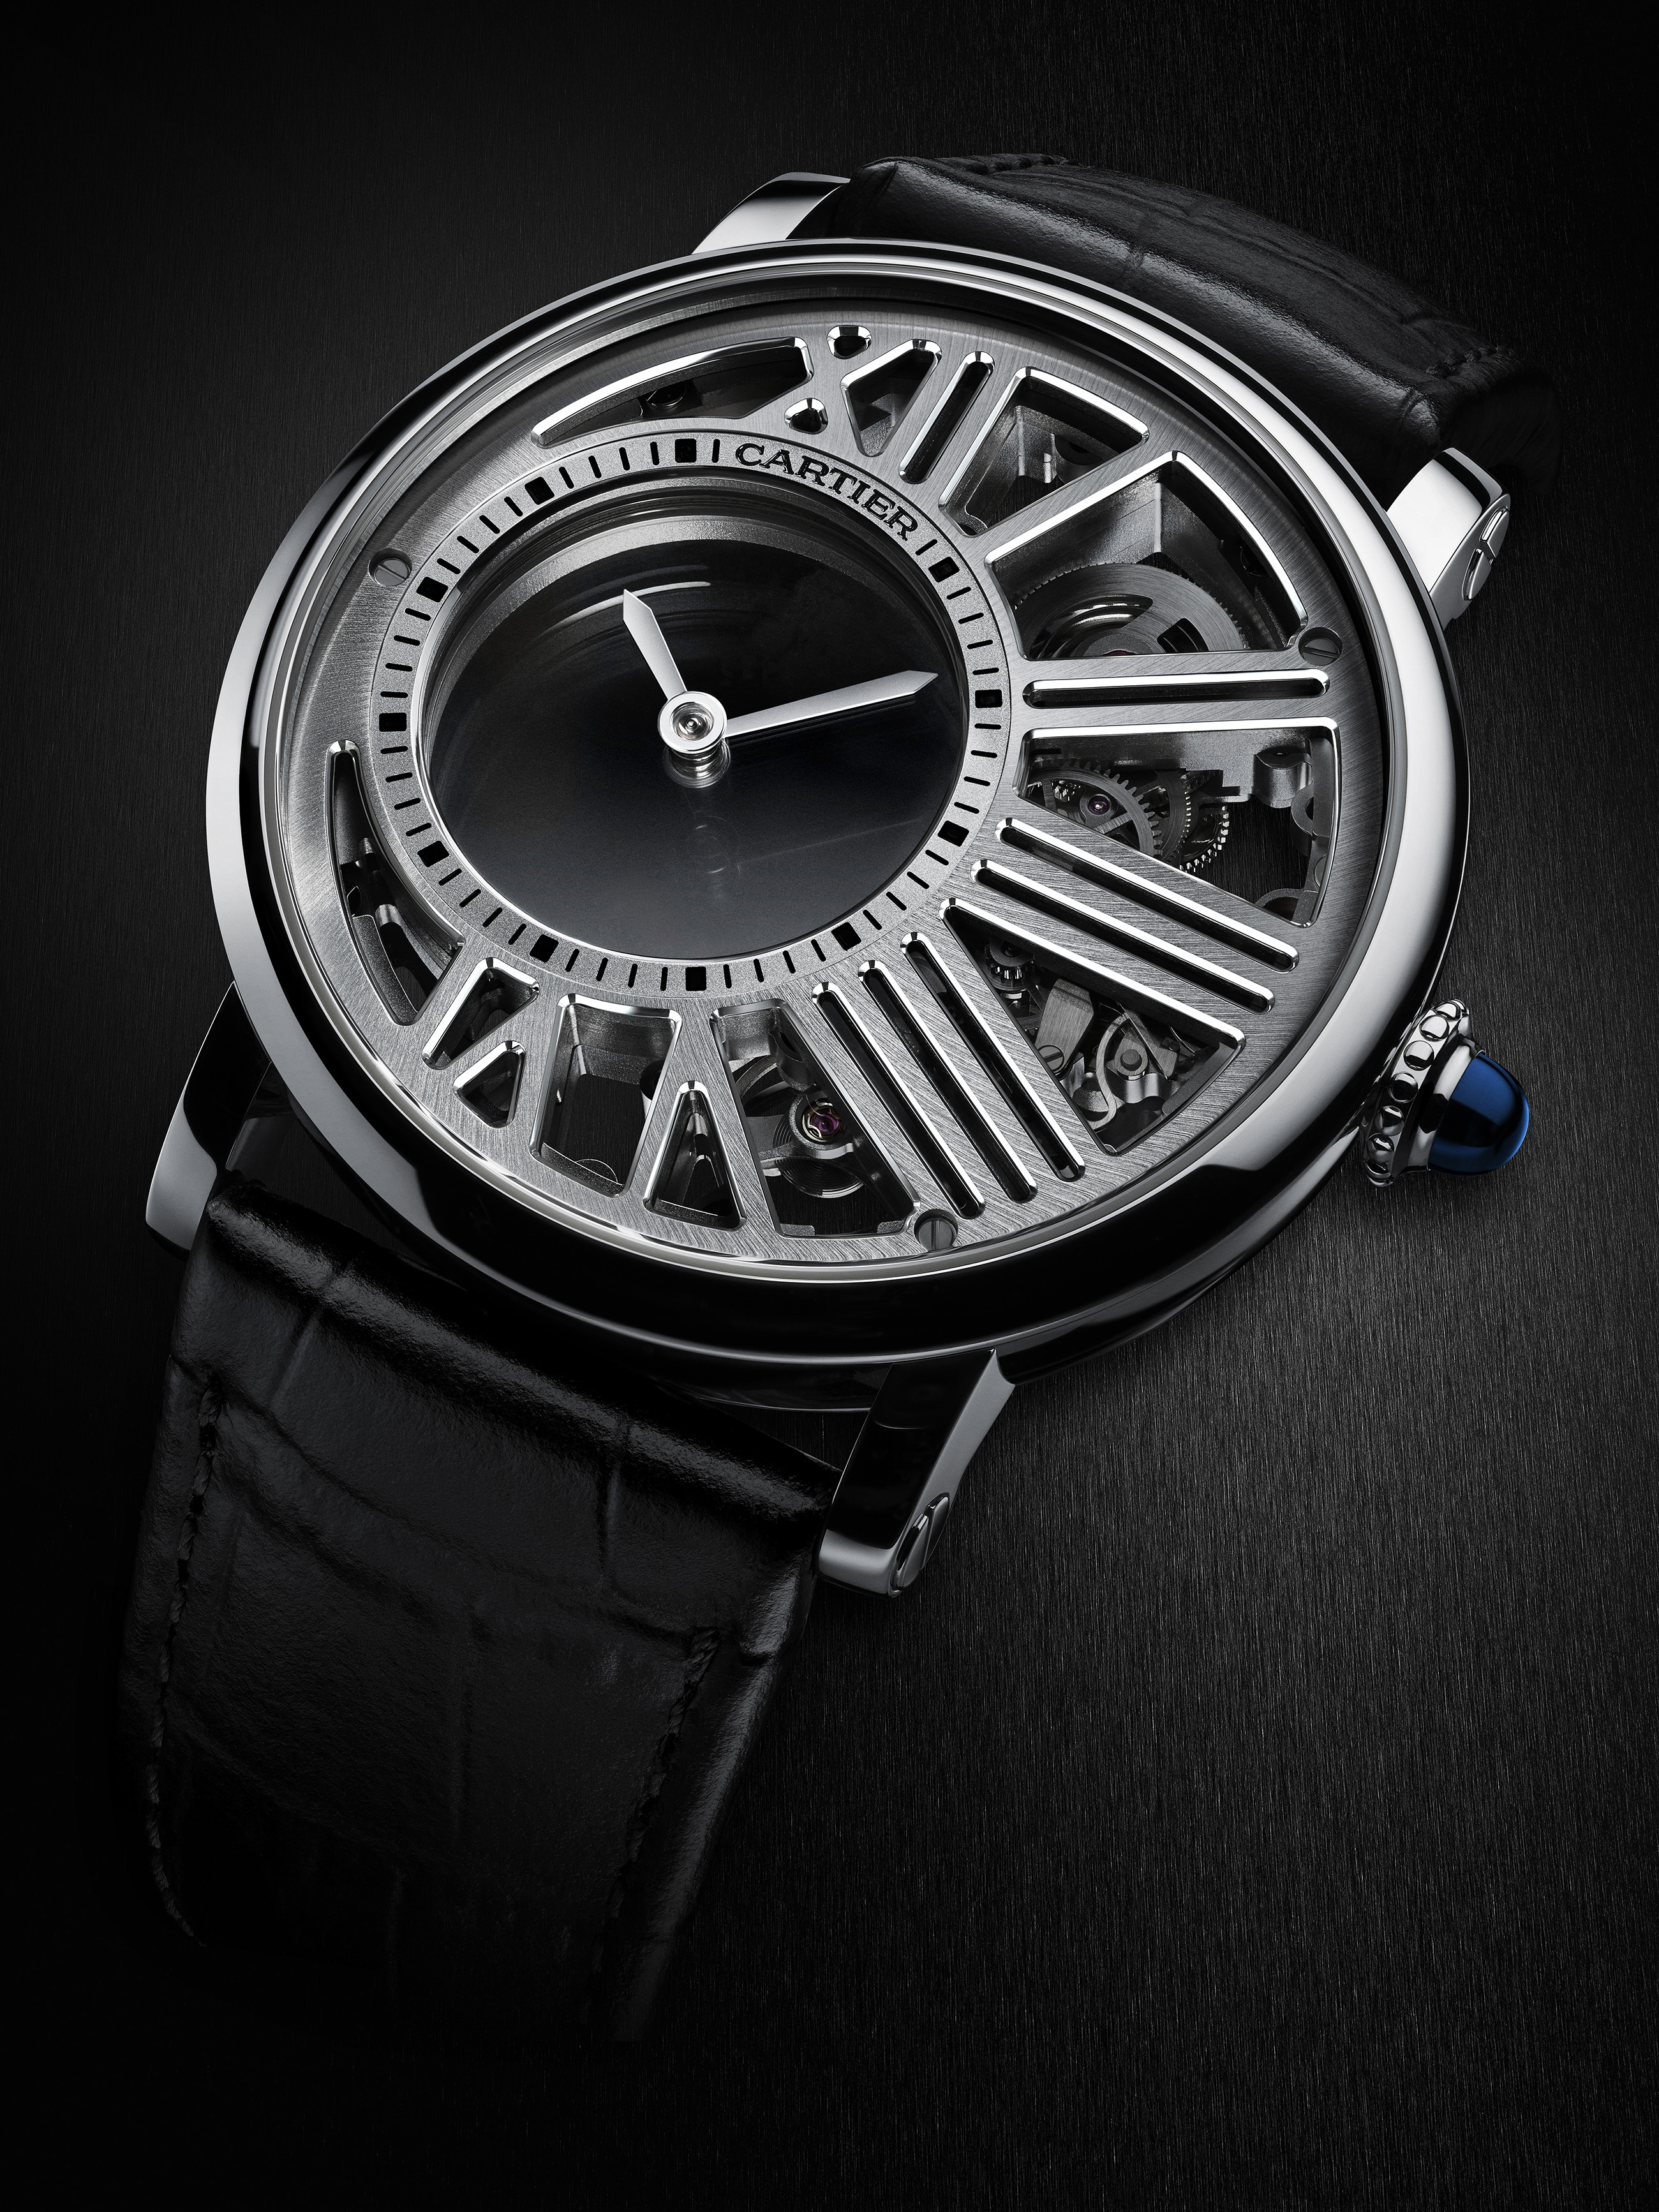 P:Prensa 2017PRESS RELEASES 201703_CARTIER_EXCEPTIONAL_WATCHES_SIHH2017IMAGESHIGH RES07C_Mysterious_ Hour_watch_WHRO0014 copy